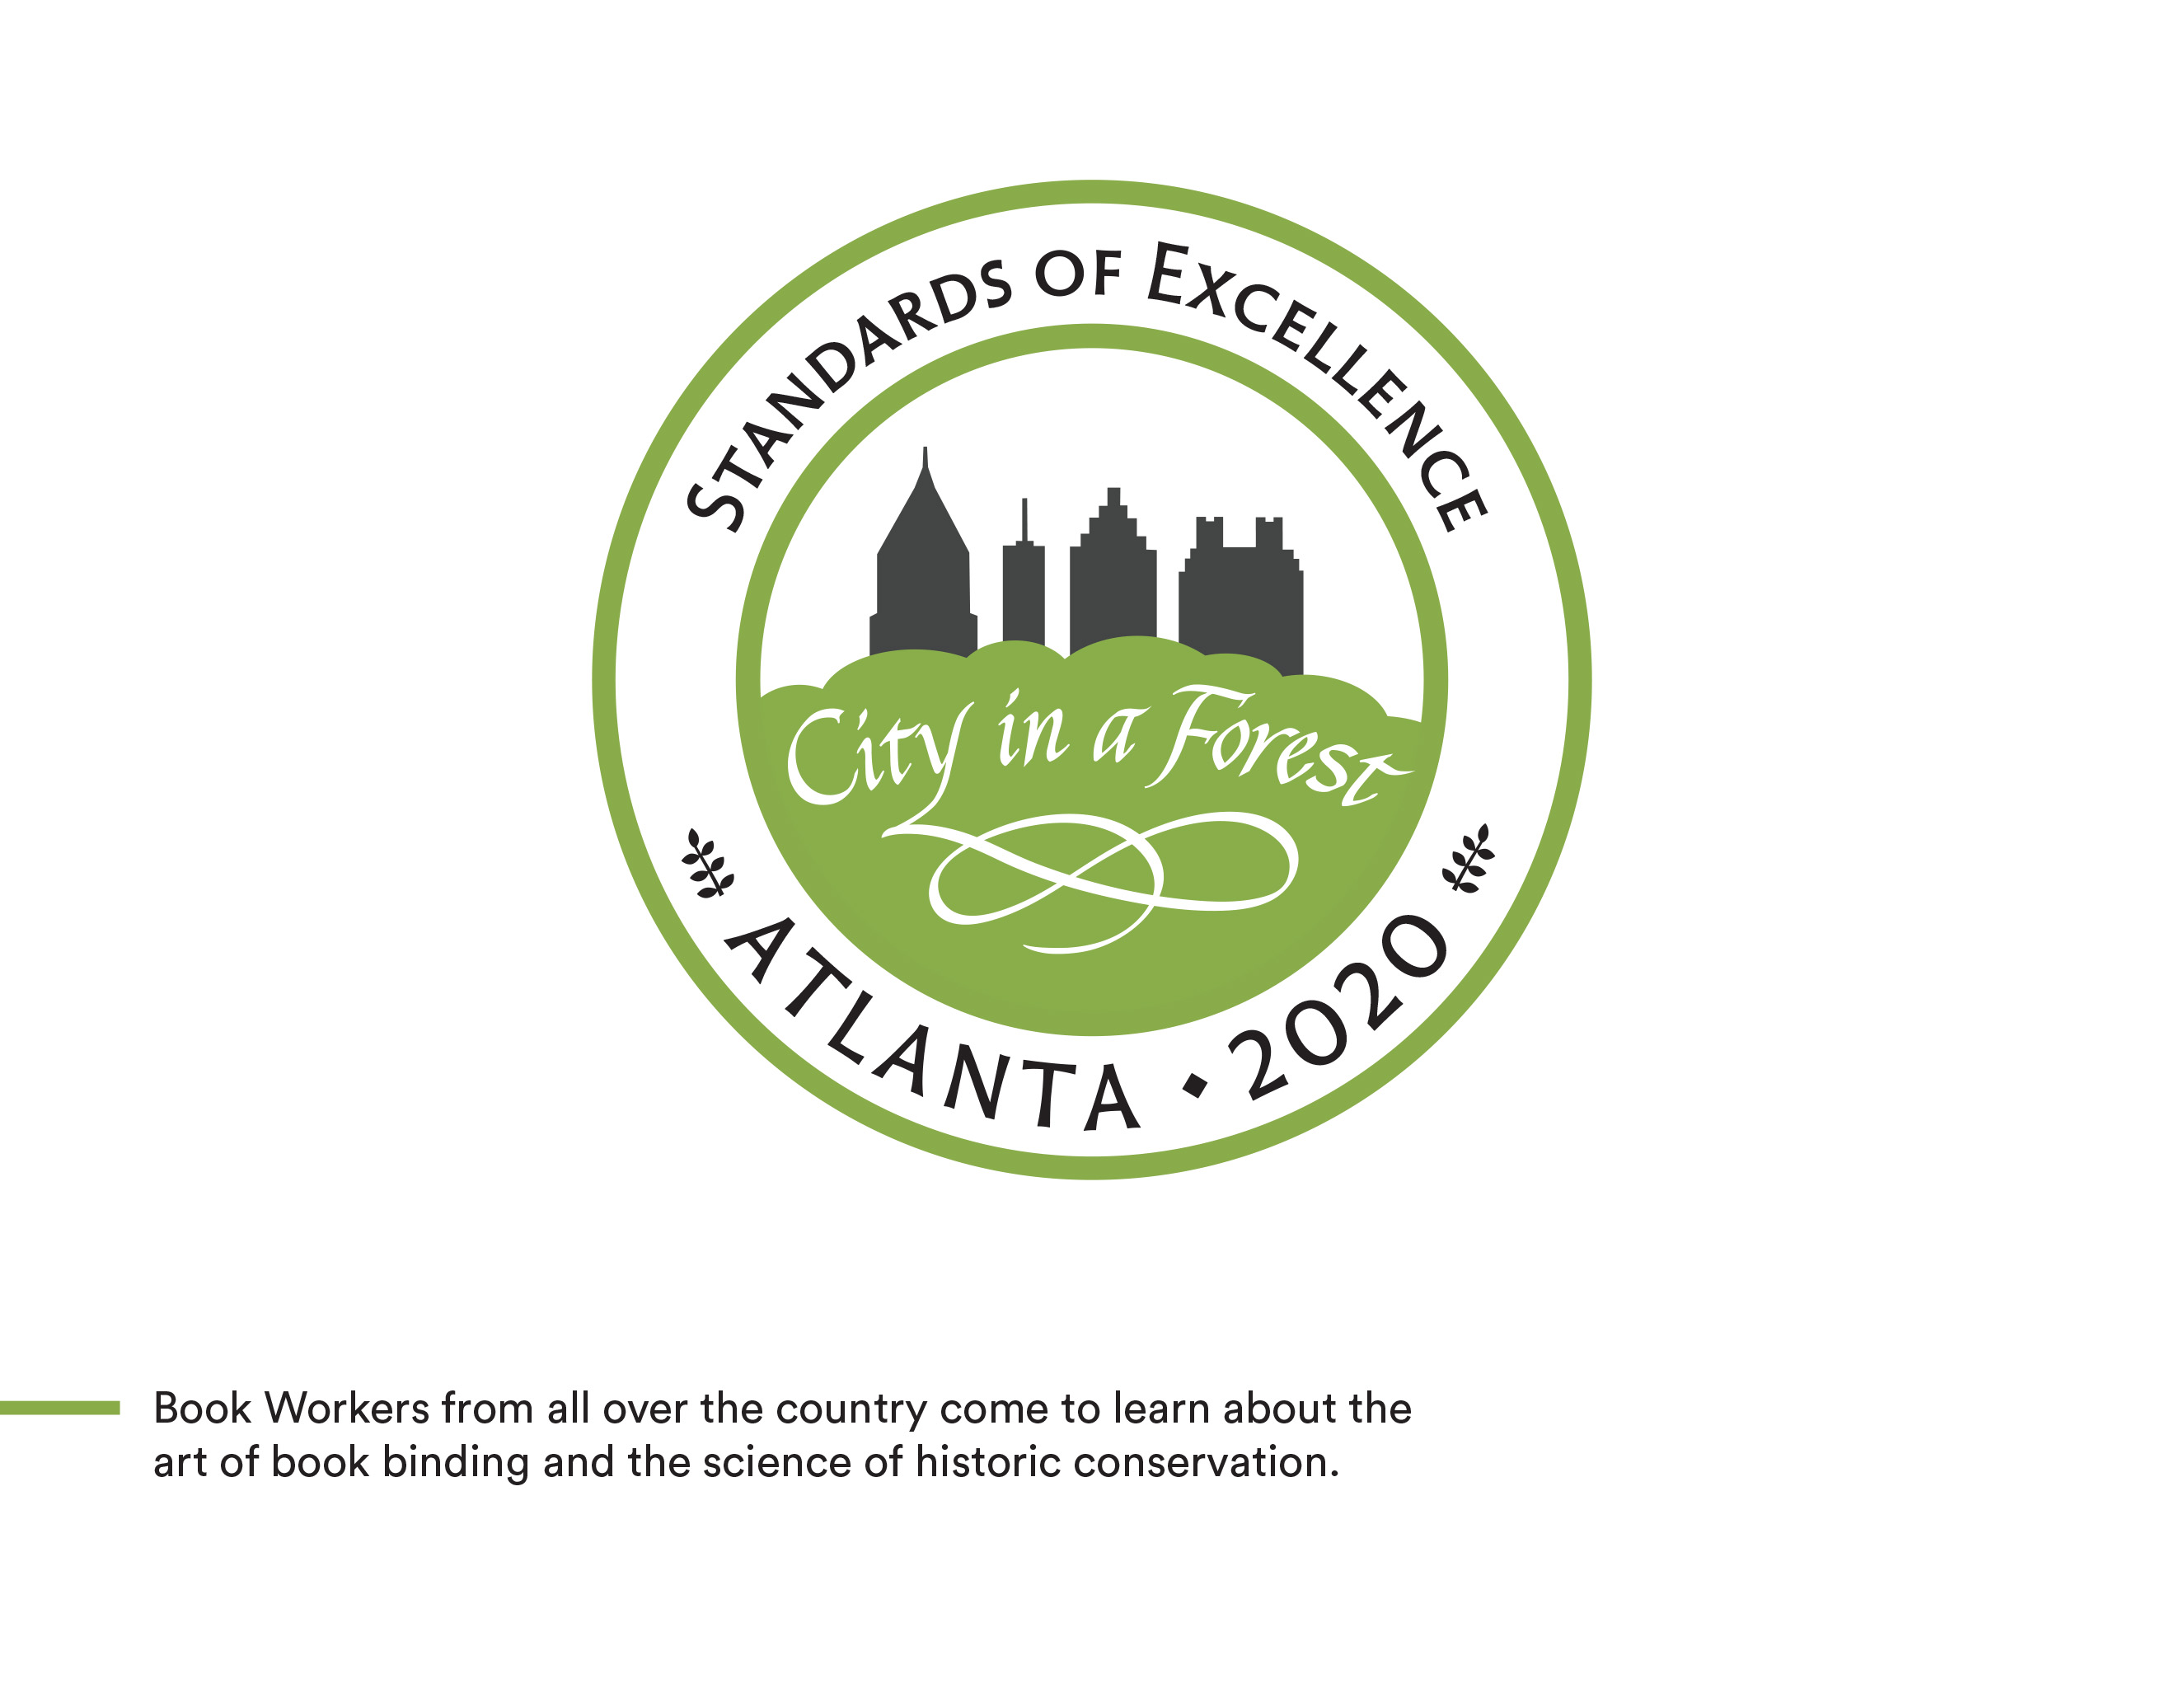 A circular event logo with a silhouette of the Atlanta city skyline above green that reads City in a Forest. On the outside of the event logo text reads Standards of Excellence - Atlanta 2020. Blow the stamp is additional text that reads Book Workers from all over the country come to learn about the art of bookbinding and the science of historic conservation.